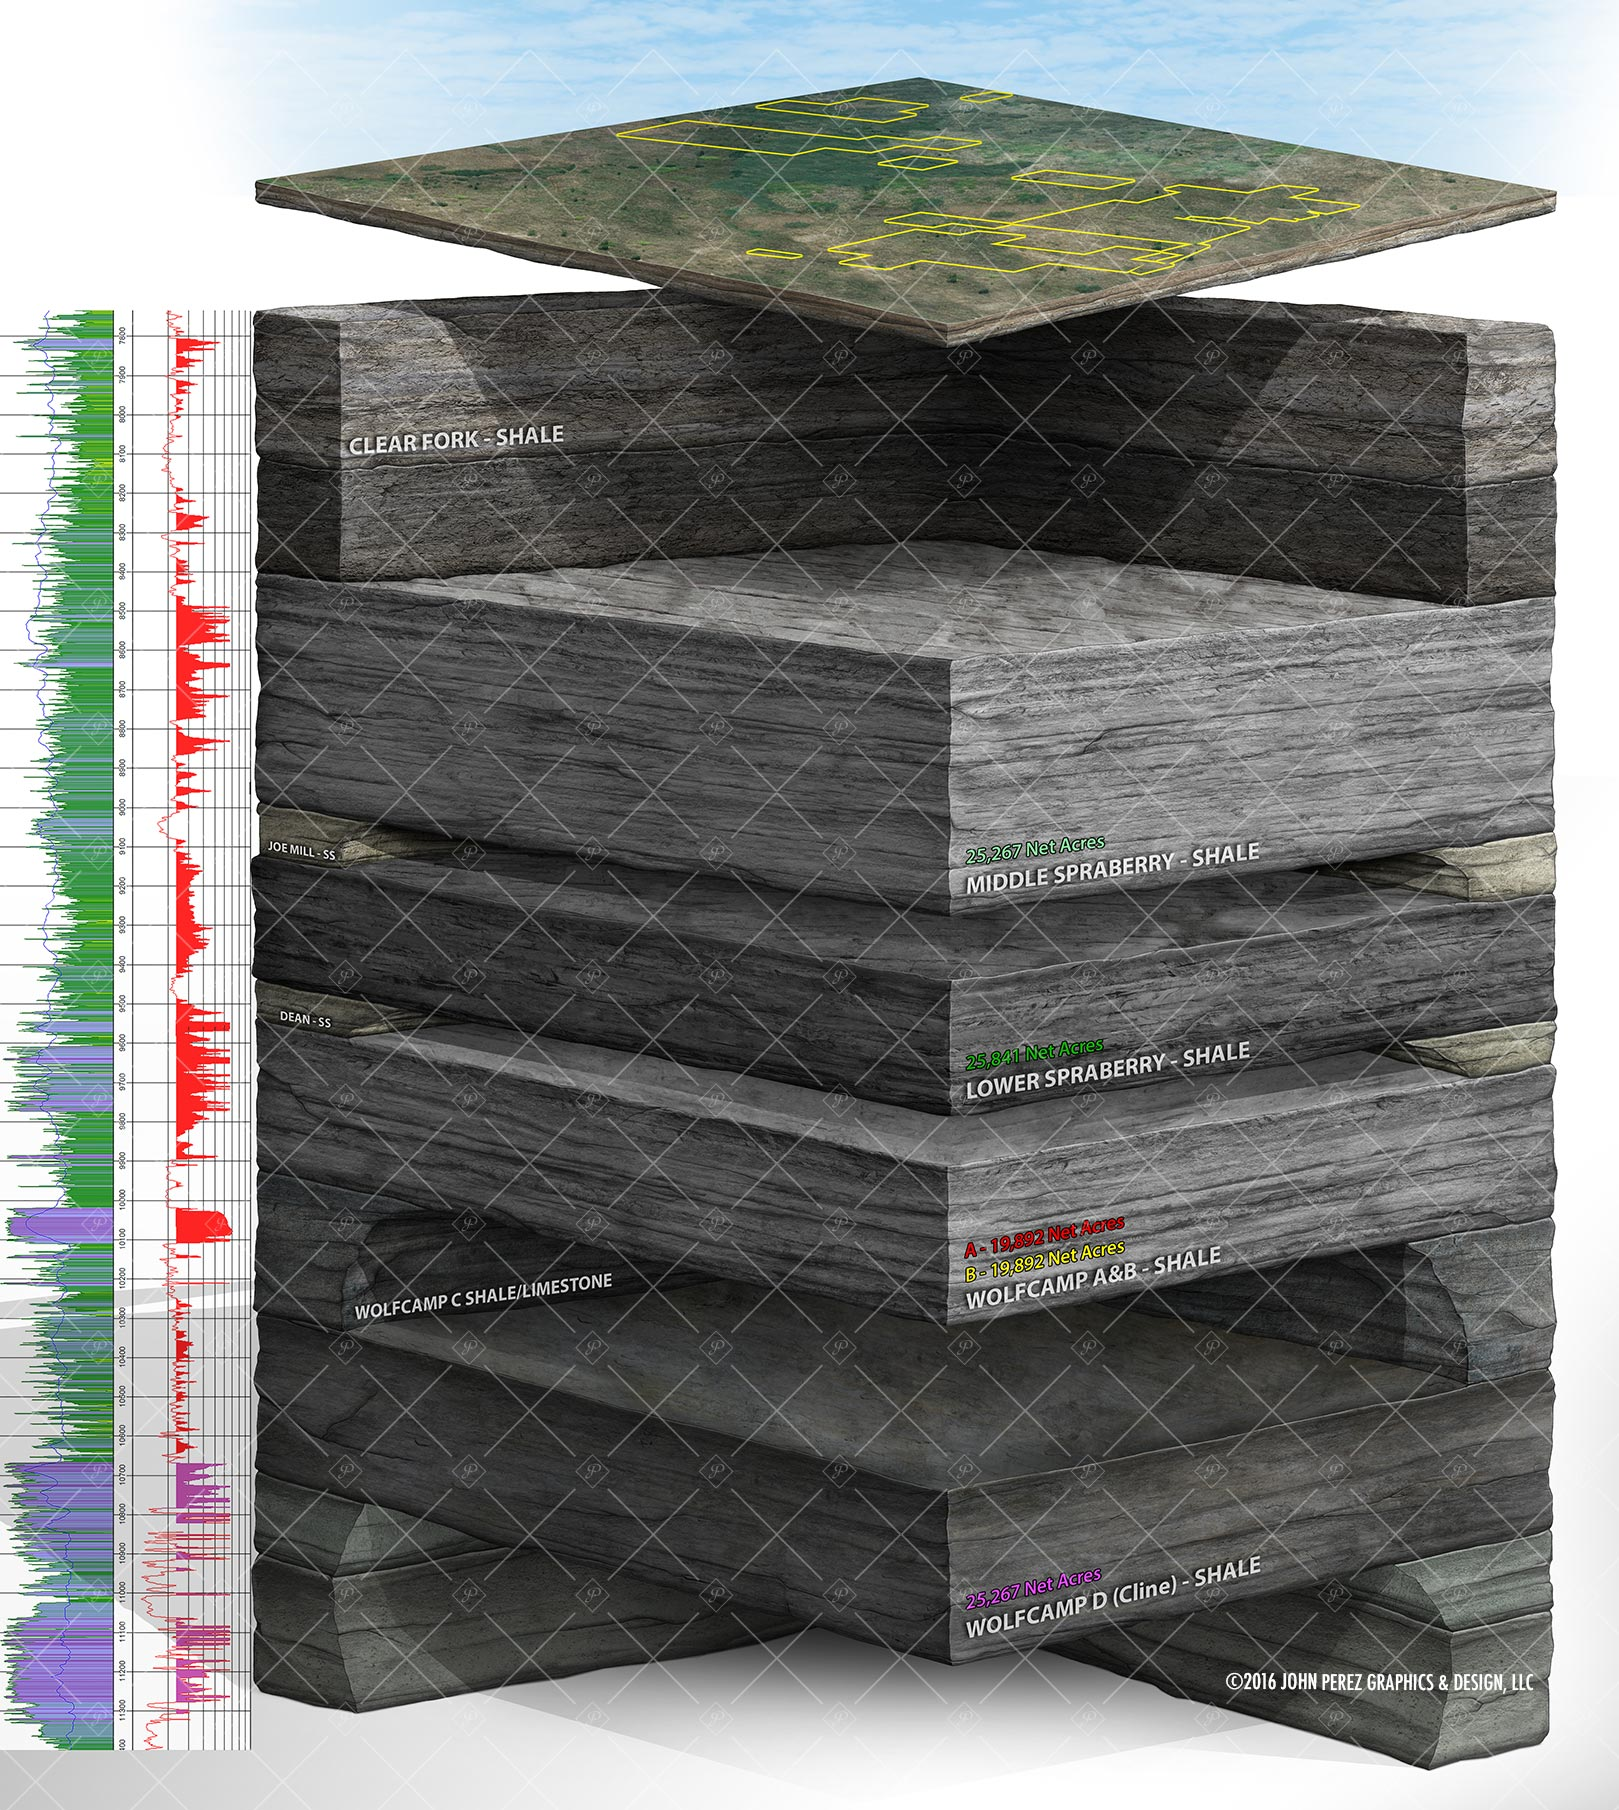 Permian Basin Stacked Pay Schematic, drilling geology, oil and gas graphics, oil and gas schematics, permian basin, john perez graphics, Permian Basin Map